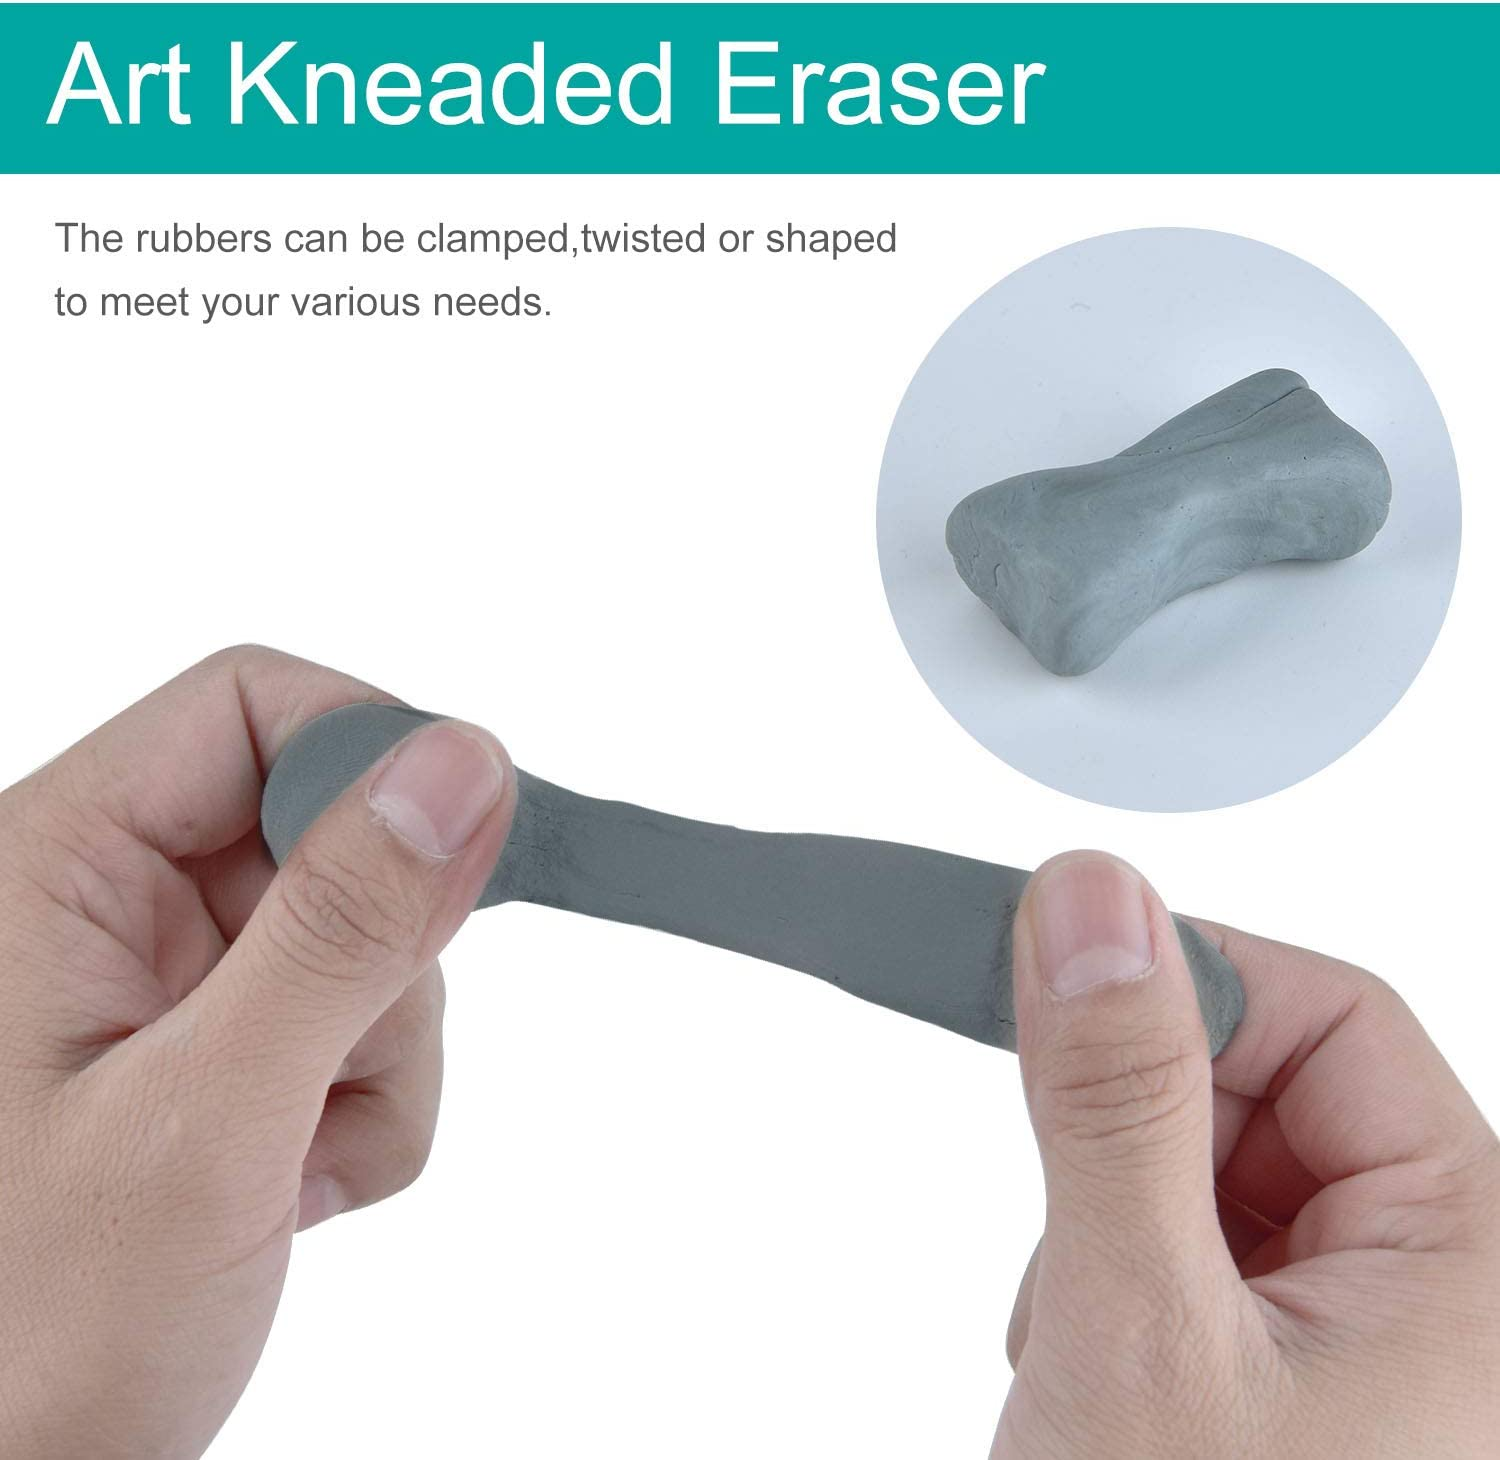 10 Grey SAYAYA Kneaded Erasers Drawing Art Kneaded Rubber Erasers for Drawing and Pastel